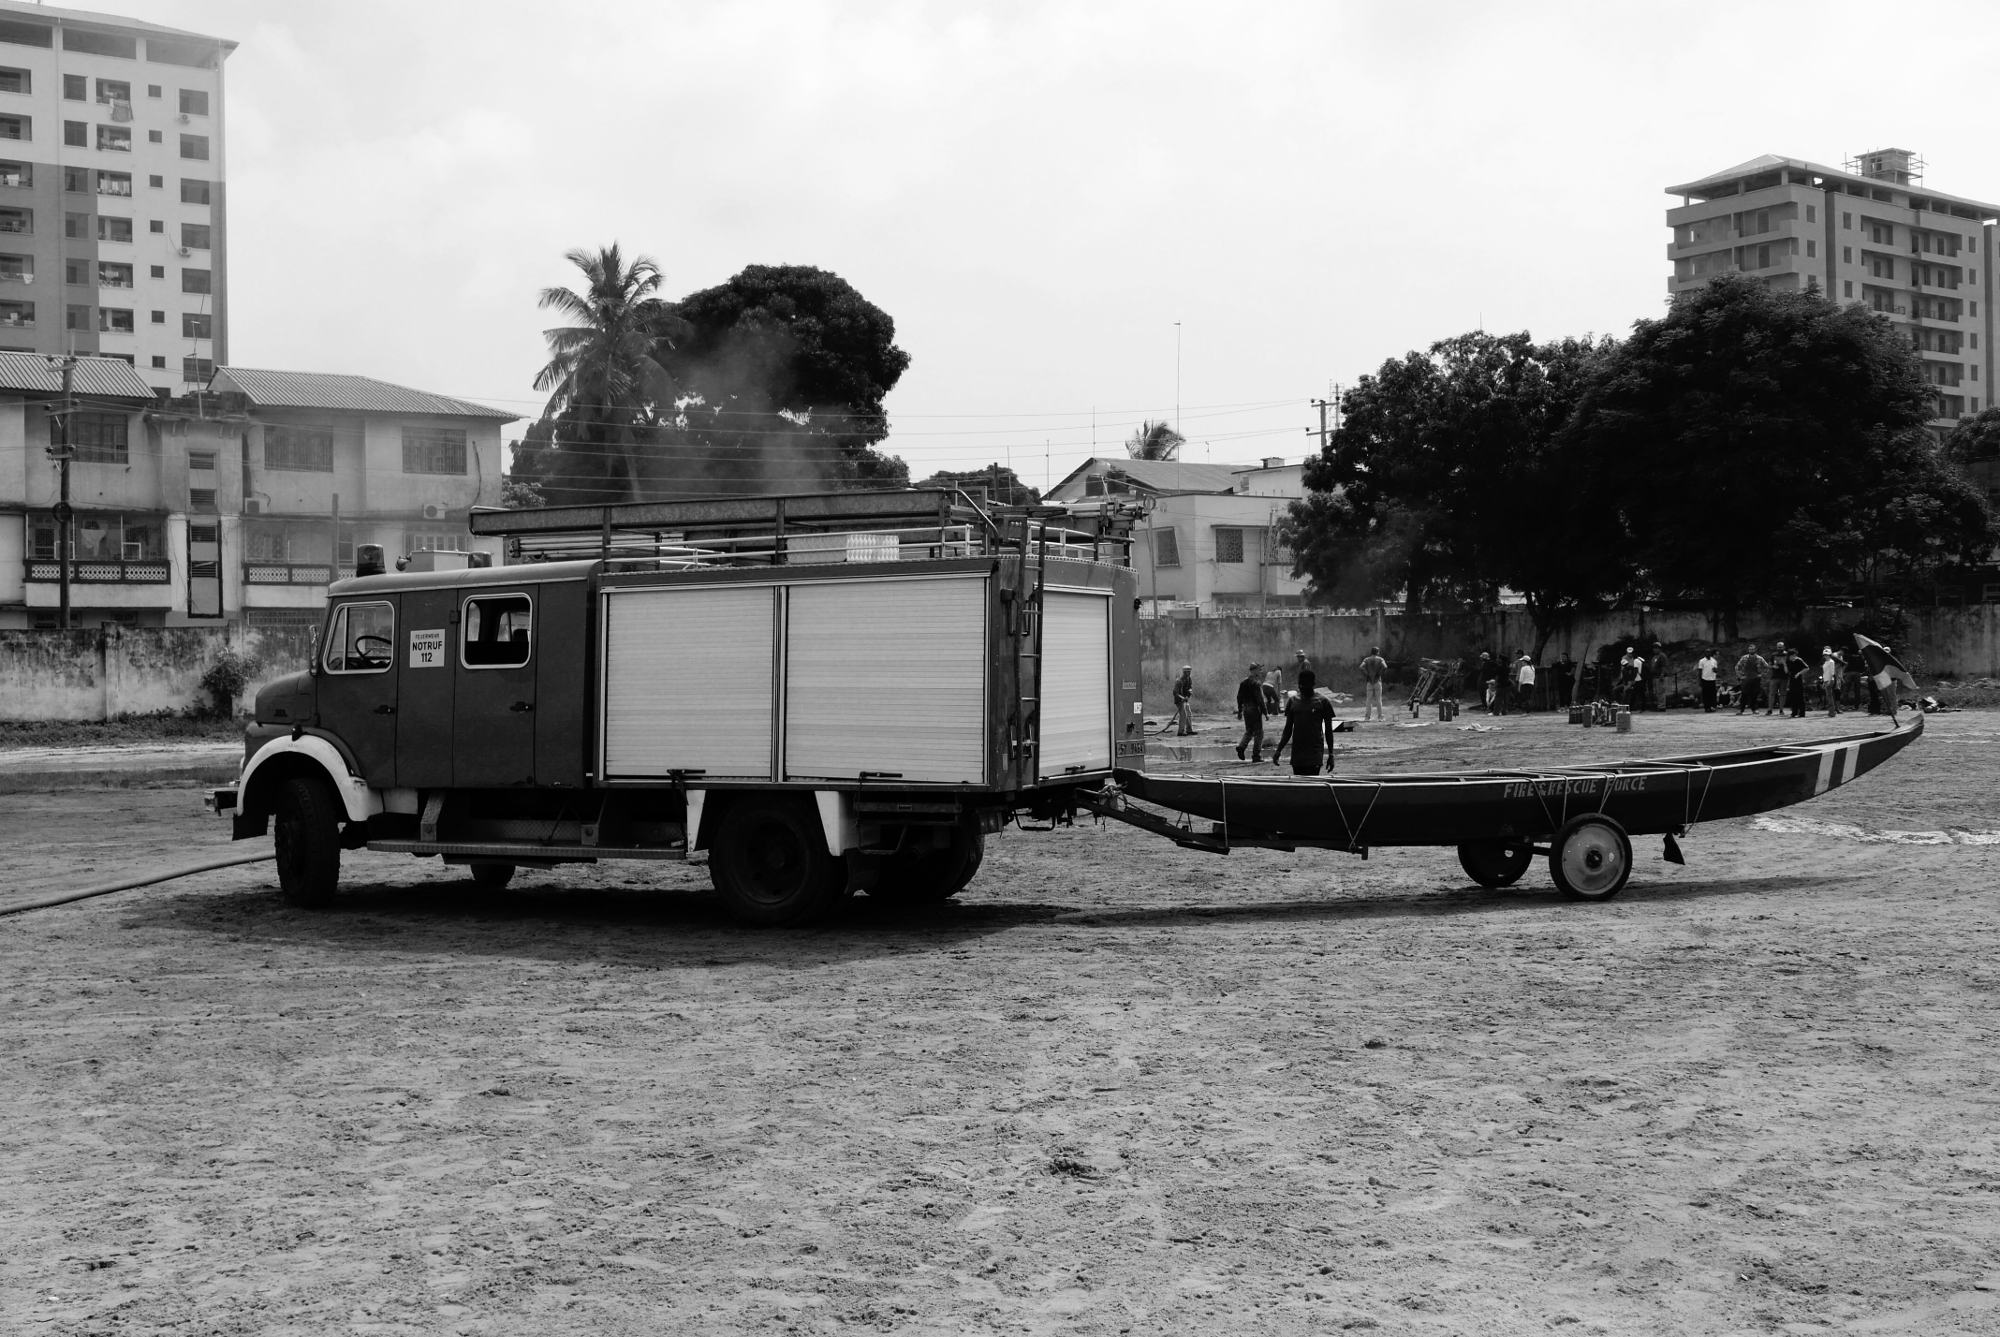 Boat trailer - First Mission